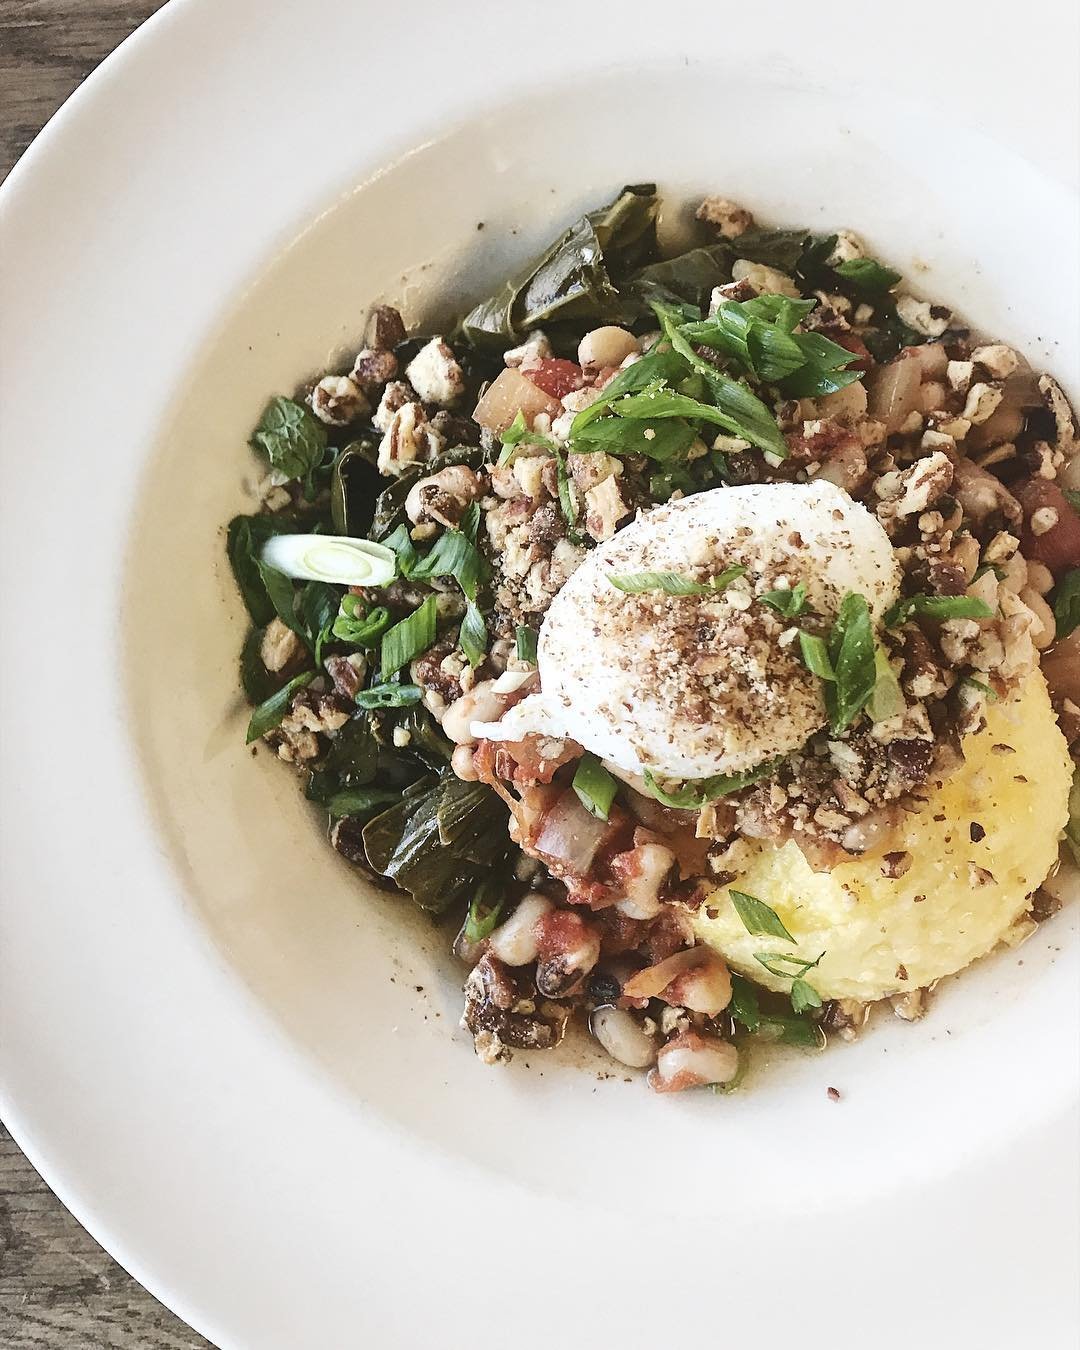 Bounty Kitchen's Potlikker Bowl;{&amp;nbsp;}Collard greens in potlikker sauce, pecans, polenta, black- eyed peas, Creole salsa, scallions, and a poached egg. (Image: Bounty Kitchen)<p></p>